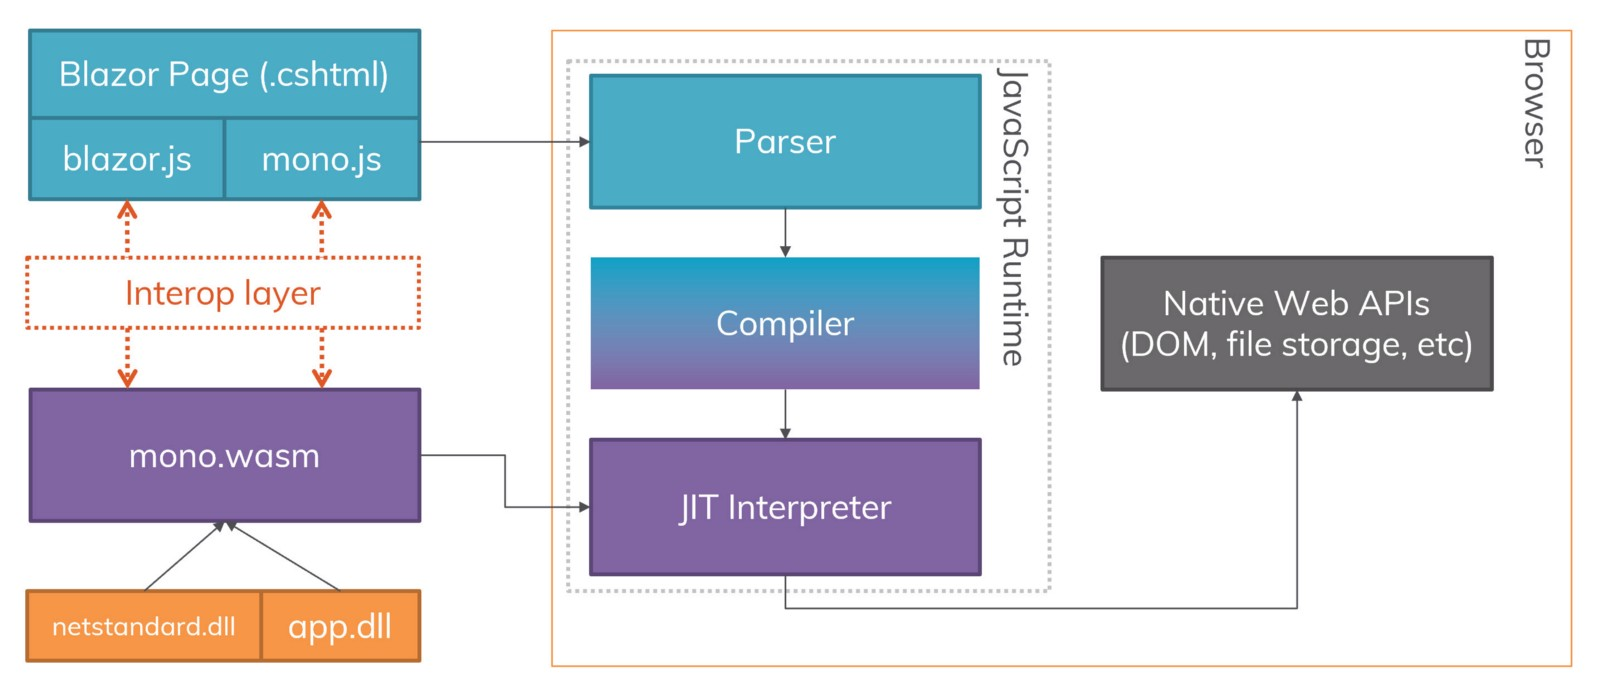 A block diagram of the Blazor & Browser relationship